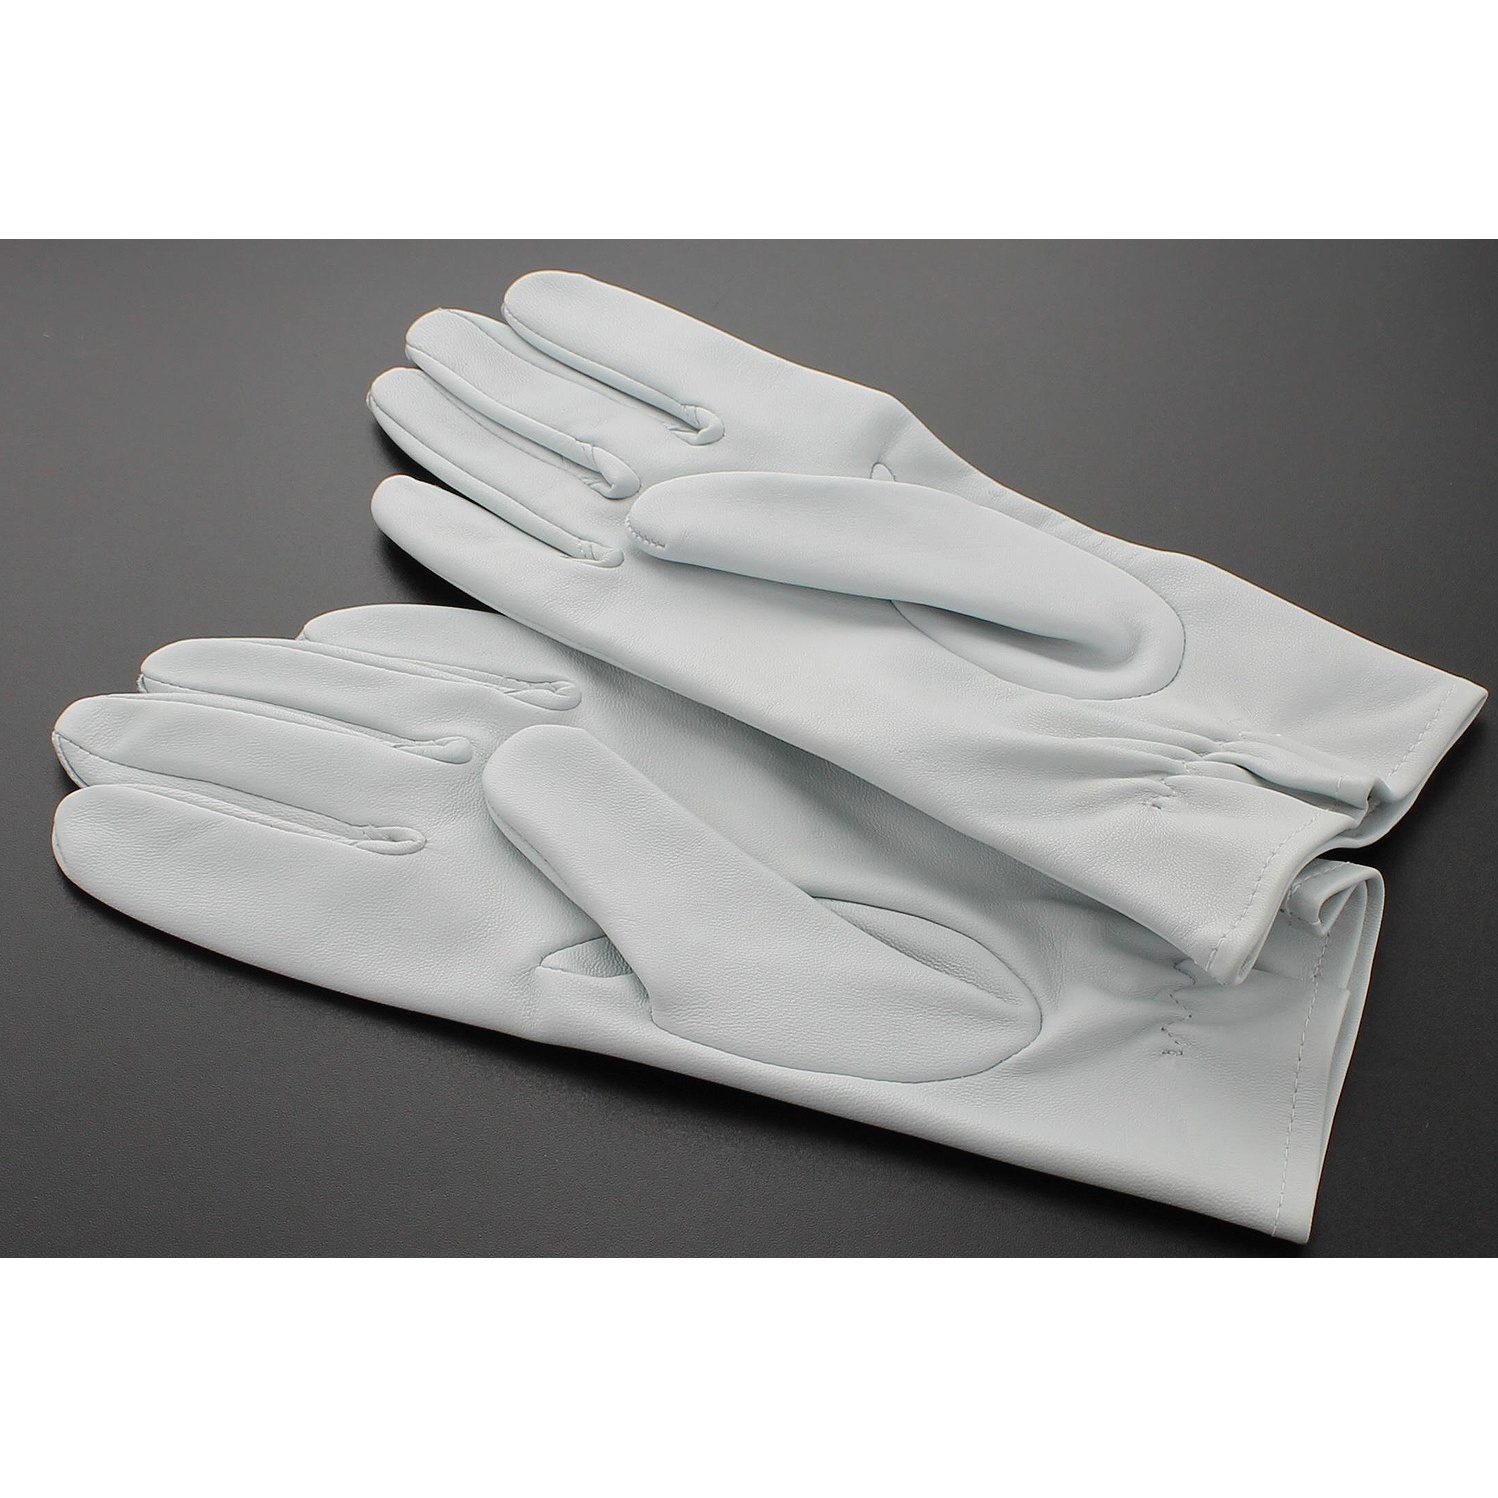 Black leather uniform gloves - Raf Leather Flying Gloves